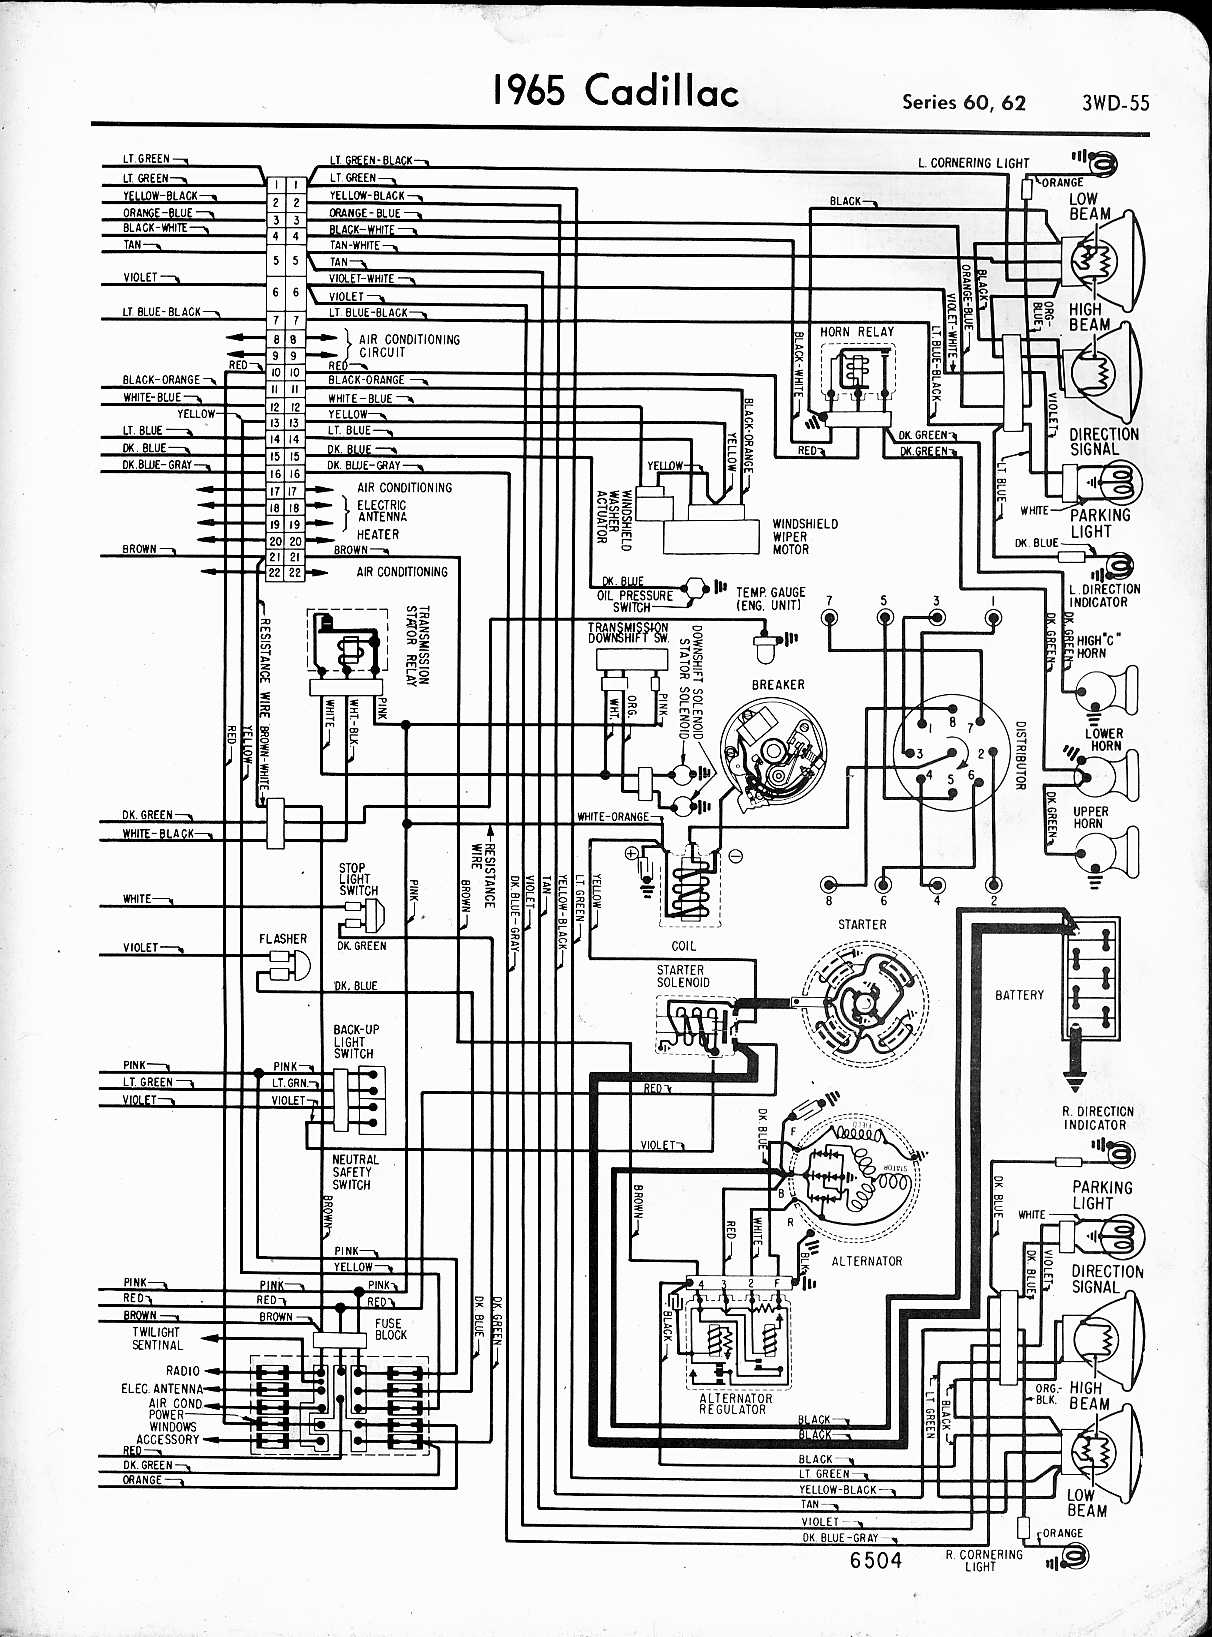 Cadillac Wiring Diagrams 1957 1965 Chevy Power Window Diagram Series 6062 Right